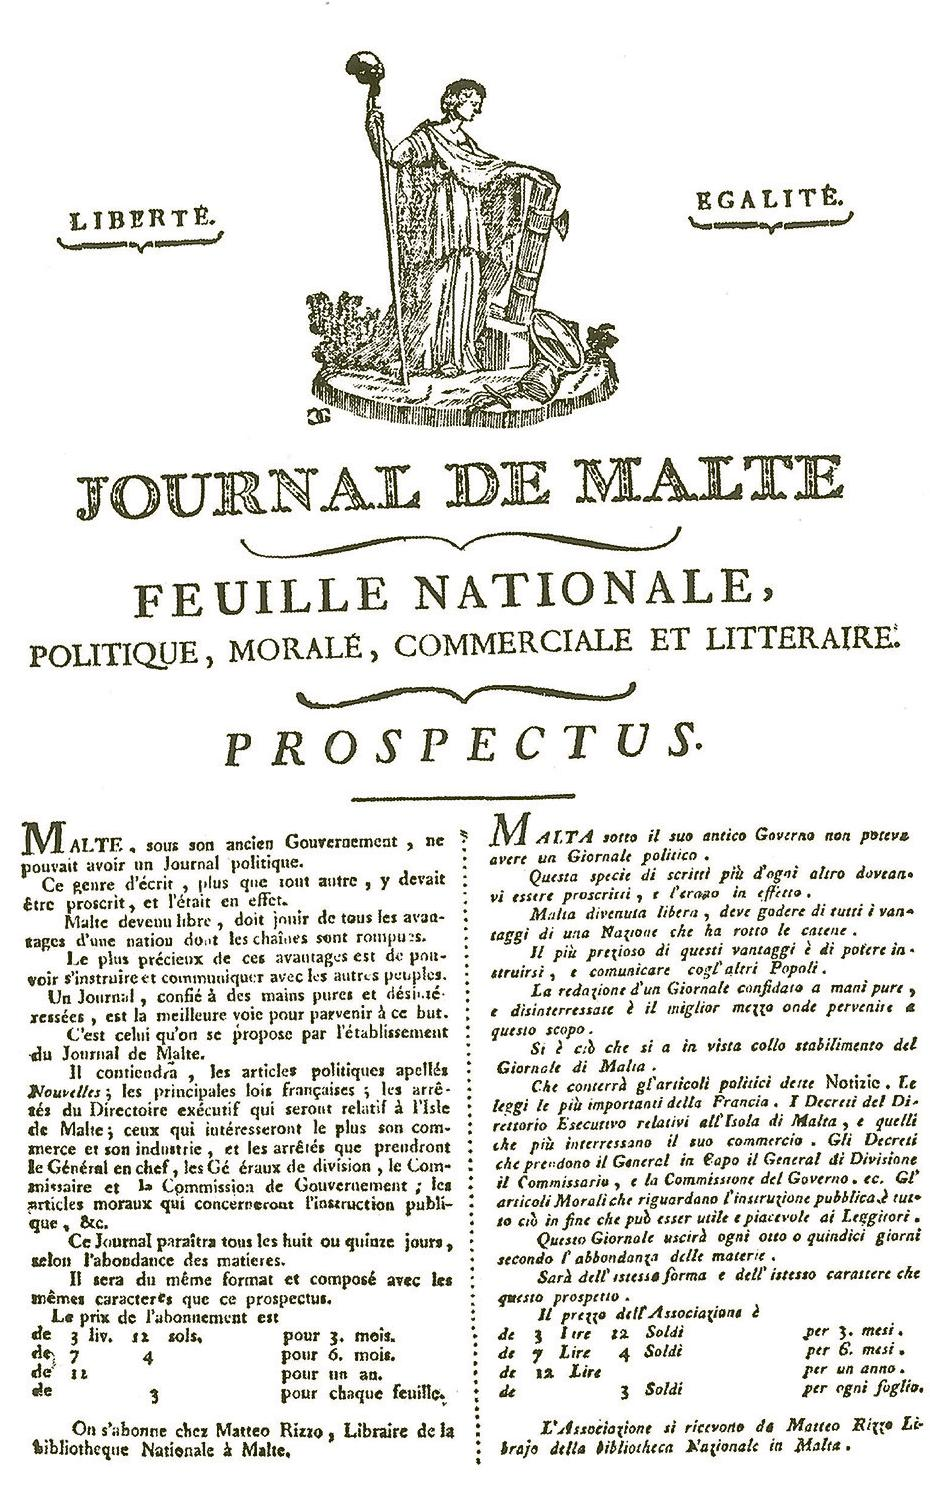 The prospectus of the Journal de Malte. Courtesy of the National Library of Malta